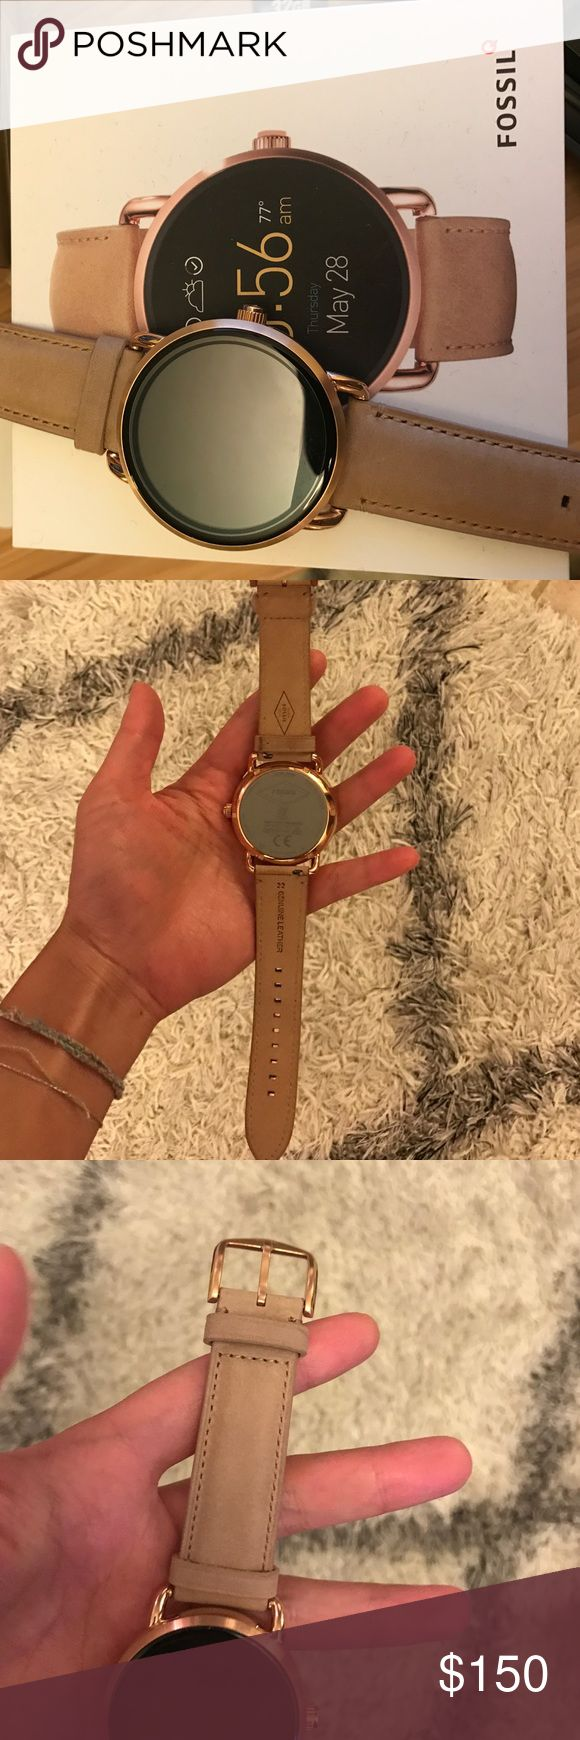 Fossil fossilQ q wander watch in tan FossilQ wander watch from Fossil in tan- worn once. Almost new comes original box, USB charger - everything that came w it. Battery lasts long good for everyday Fossil Accessories Watches